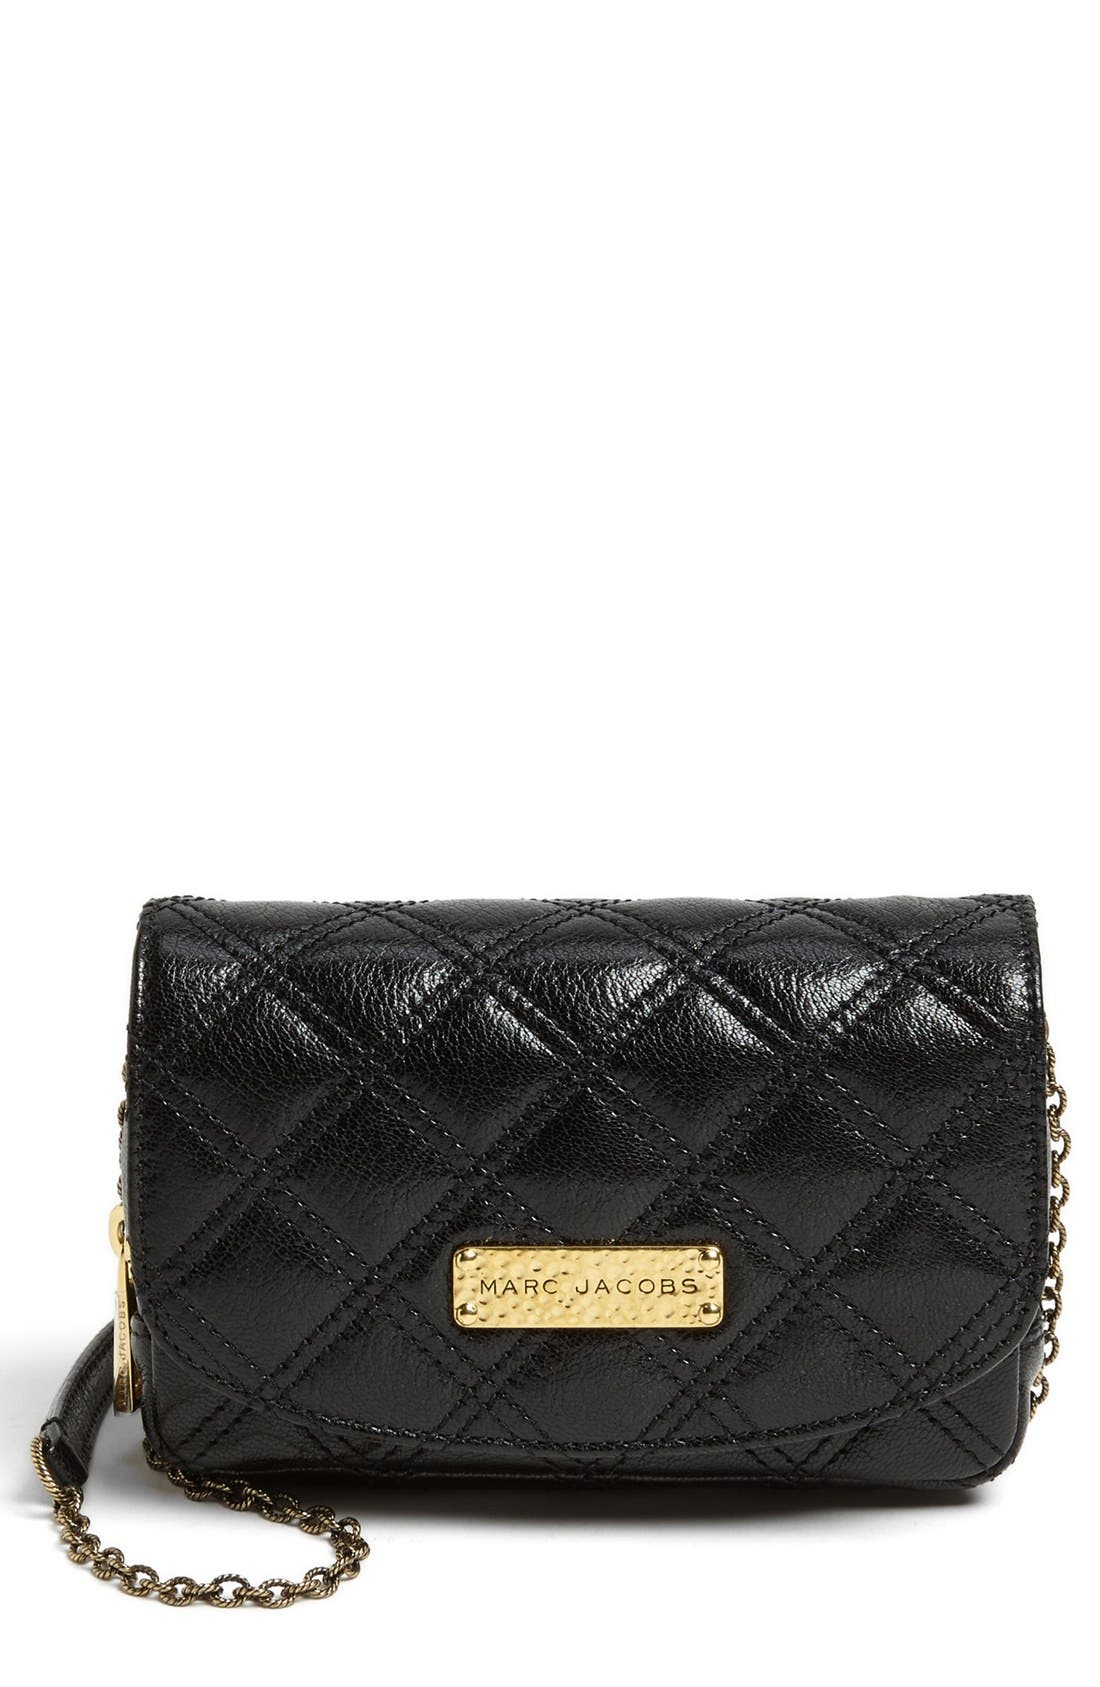 Main Image - MARC JACOBS 'Baroque - Bijoux' Leather Crossbody Bag